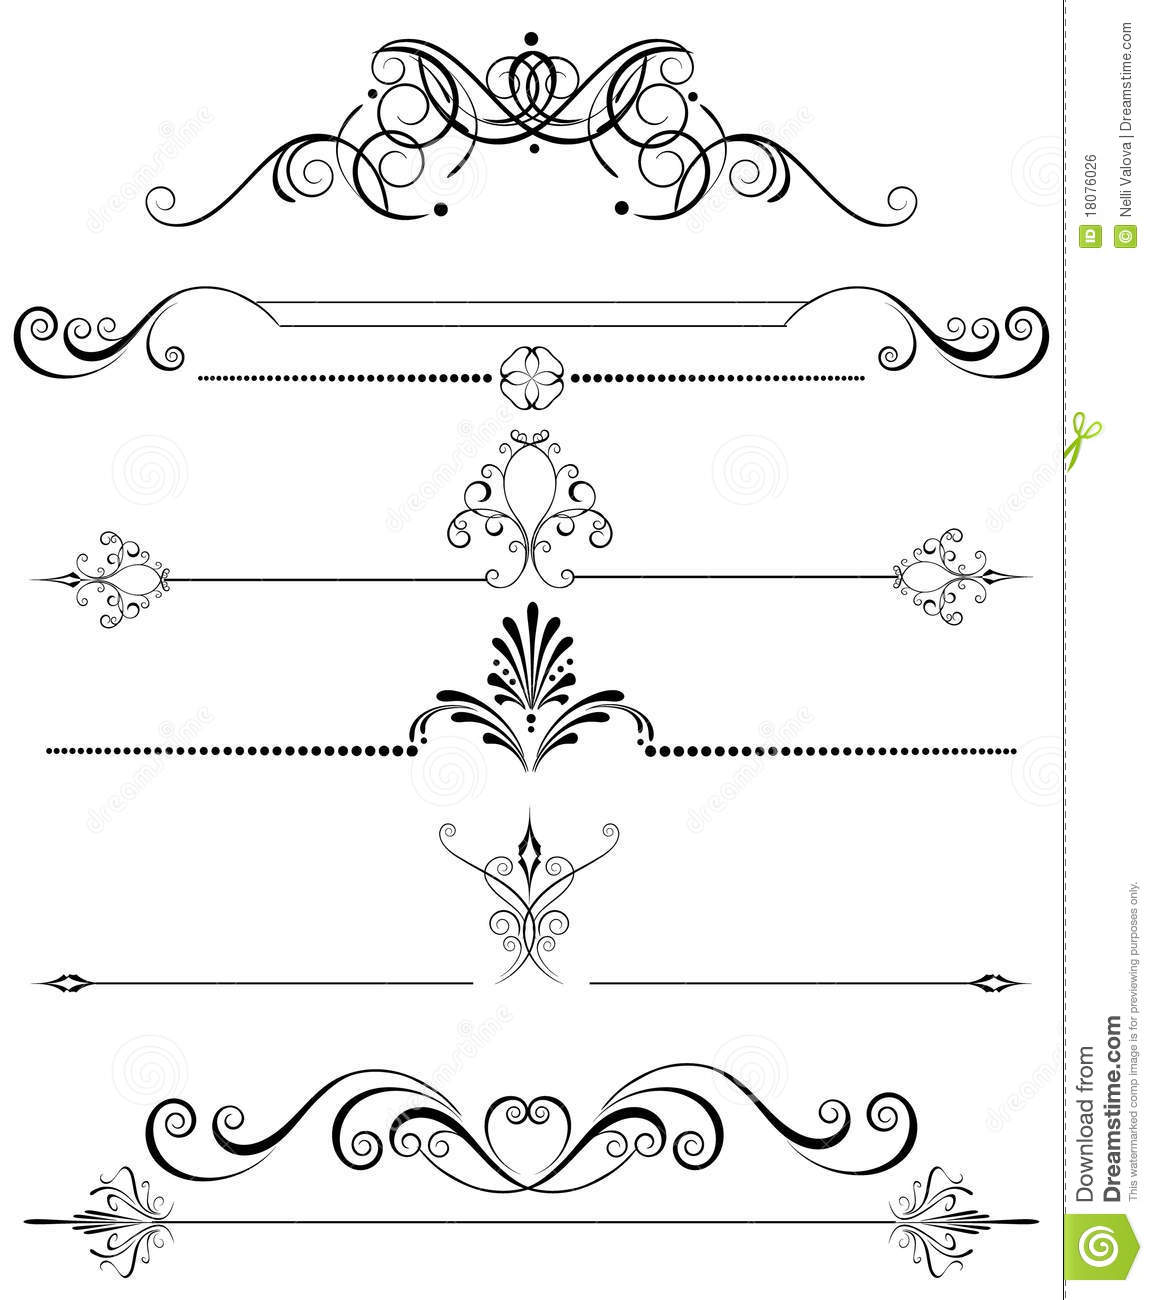 Decoration for the page royalty free stock image image for Page decoration ideas